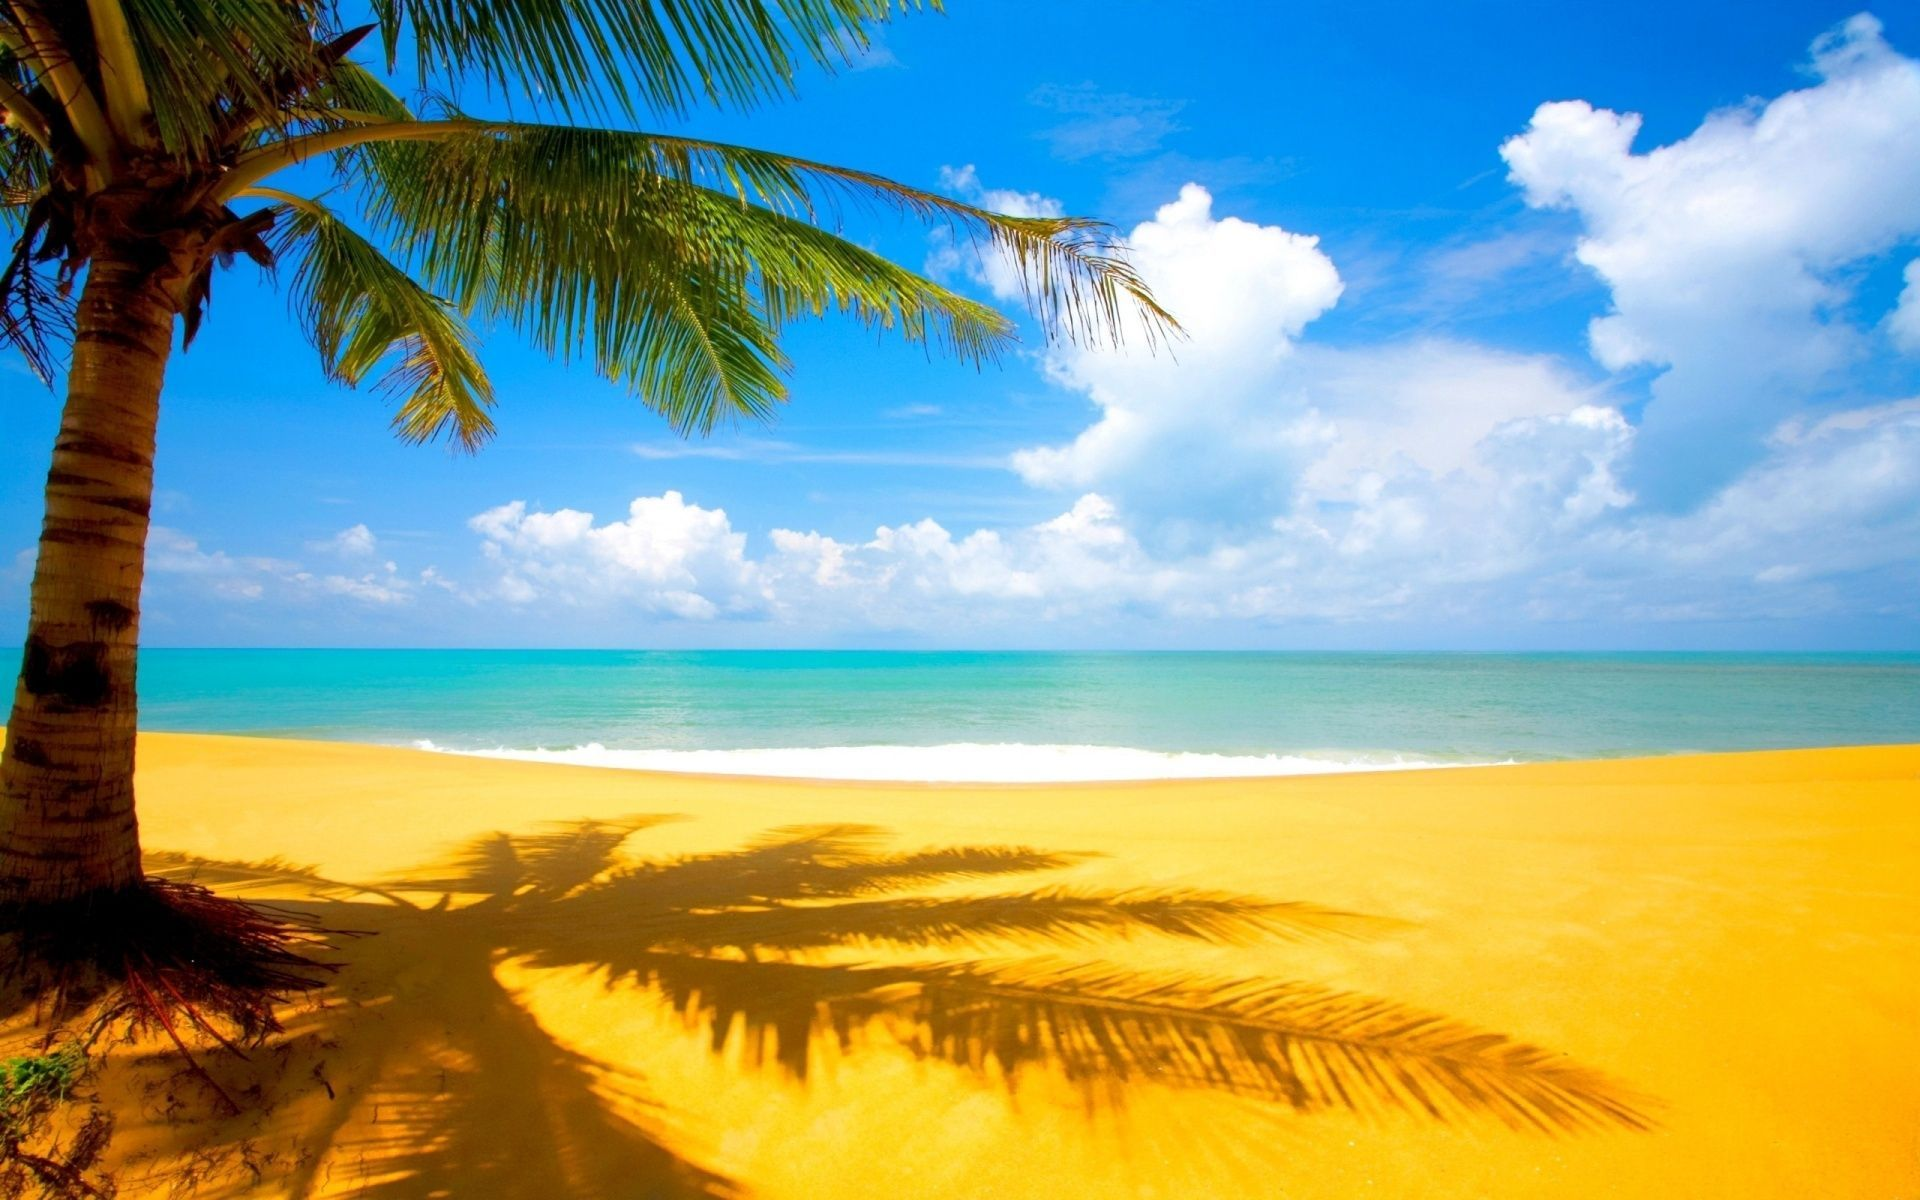 55 Super High Resolution Beach Wallpapers Download At Wallpaperbro Beach Wallpaper Beach Pictures Palm Tree Background